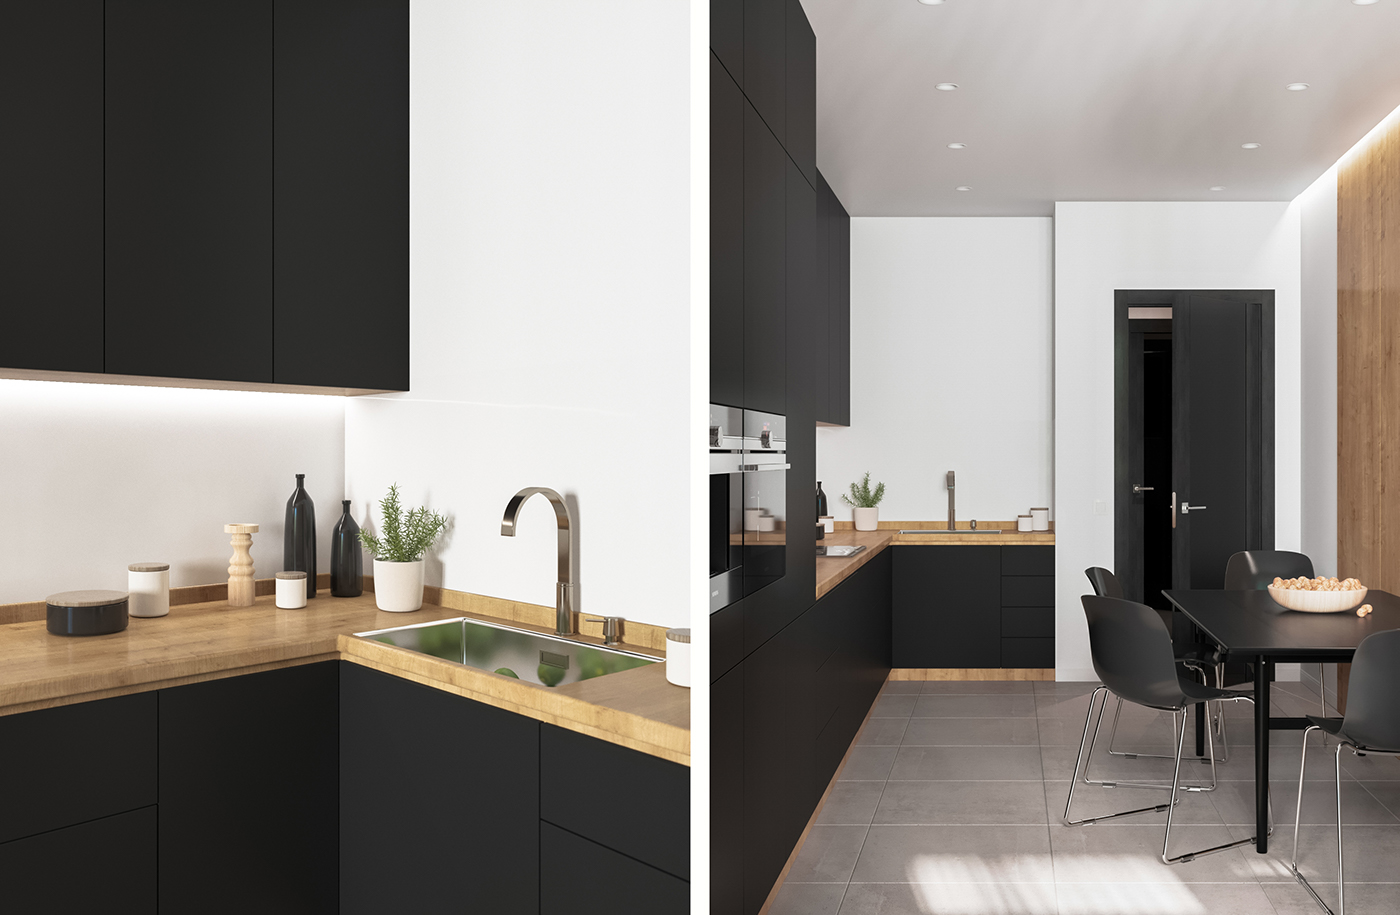 Black and Wood Apartment Shines with Mid-Century Modern Lighting 5 mid-century modern lighting Black and Wood Apartment Shines with Mid-Century Modern Lighting Black and Wood Apartment Shines with Mid Century Modern Lighting 5